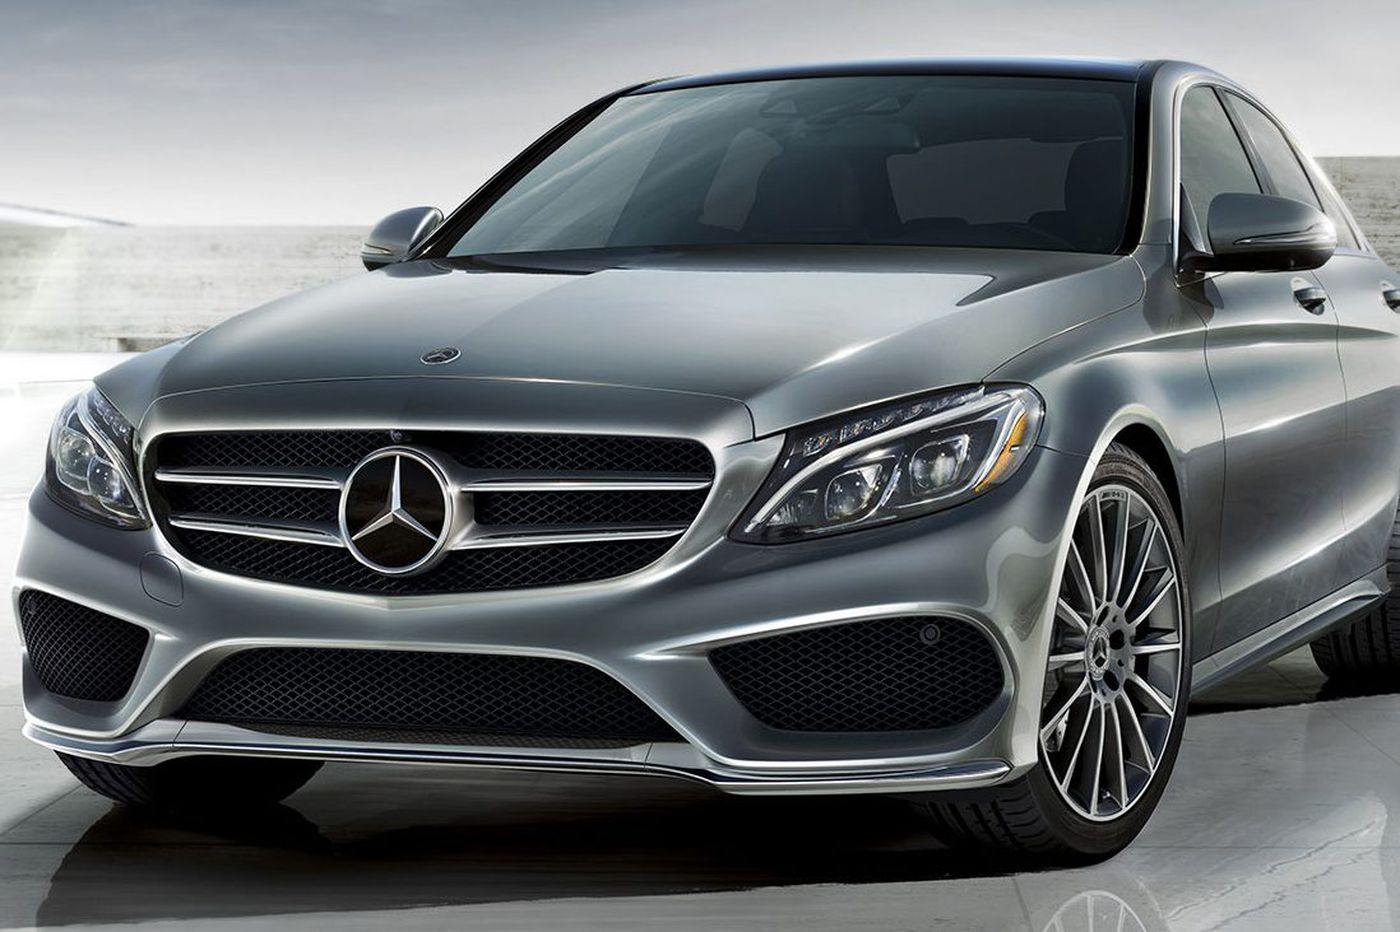 Pricey pilot program from Mercedes-Benz allows Philly members to drive four cars a month